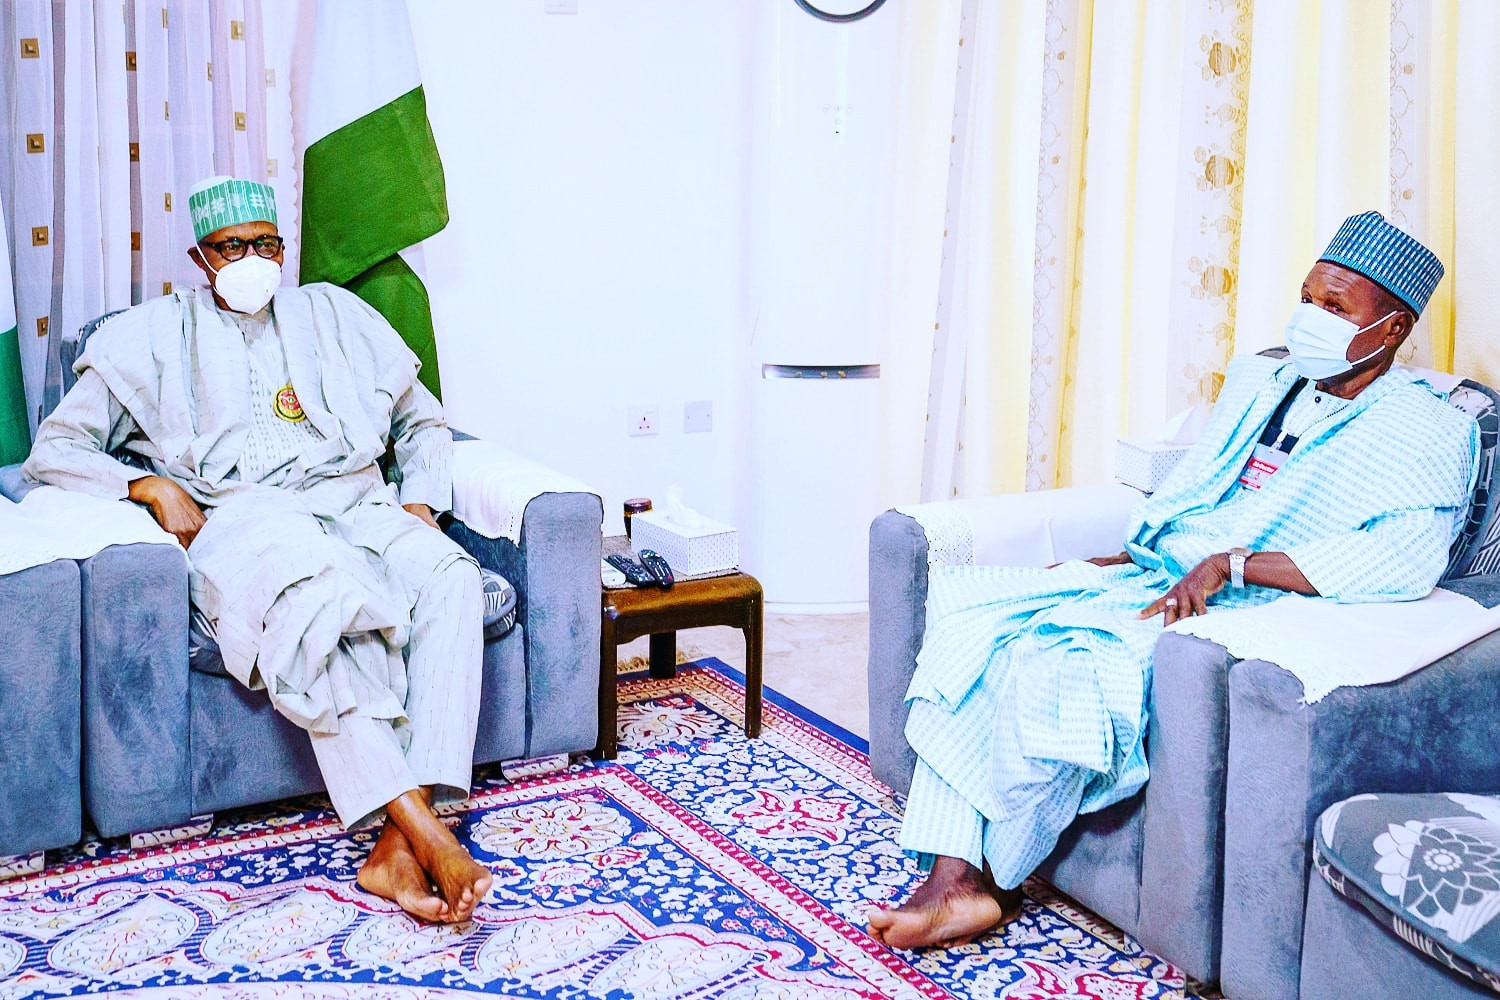 Abductors of school boys have contacted us - Katsina state governor, Aminu Masari says